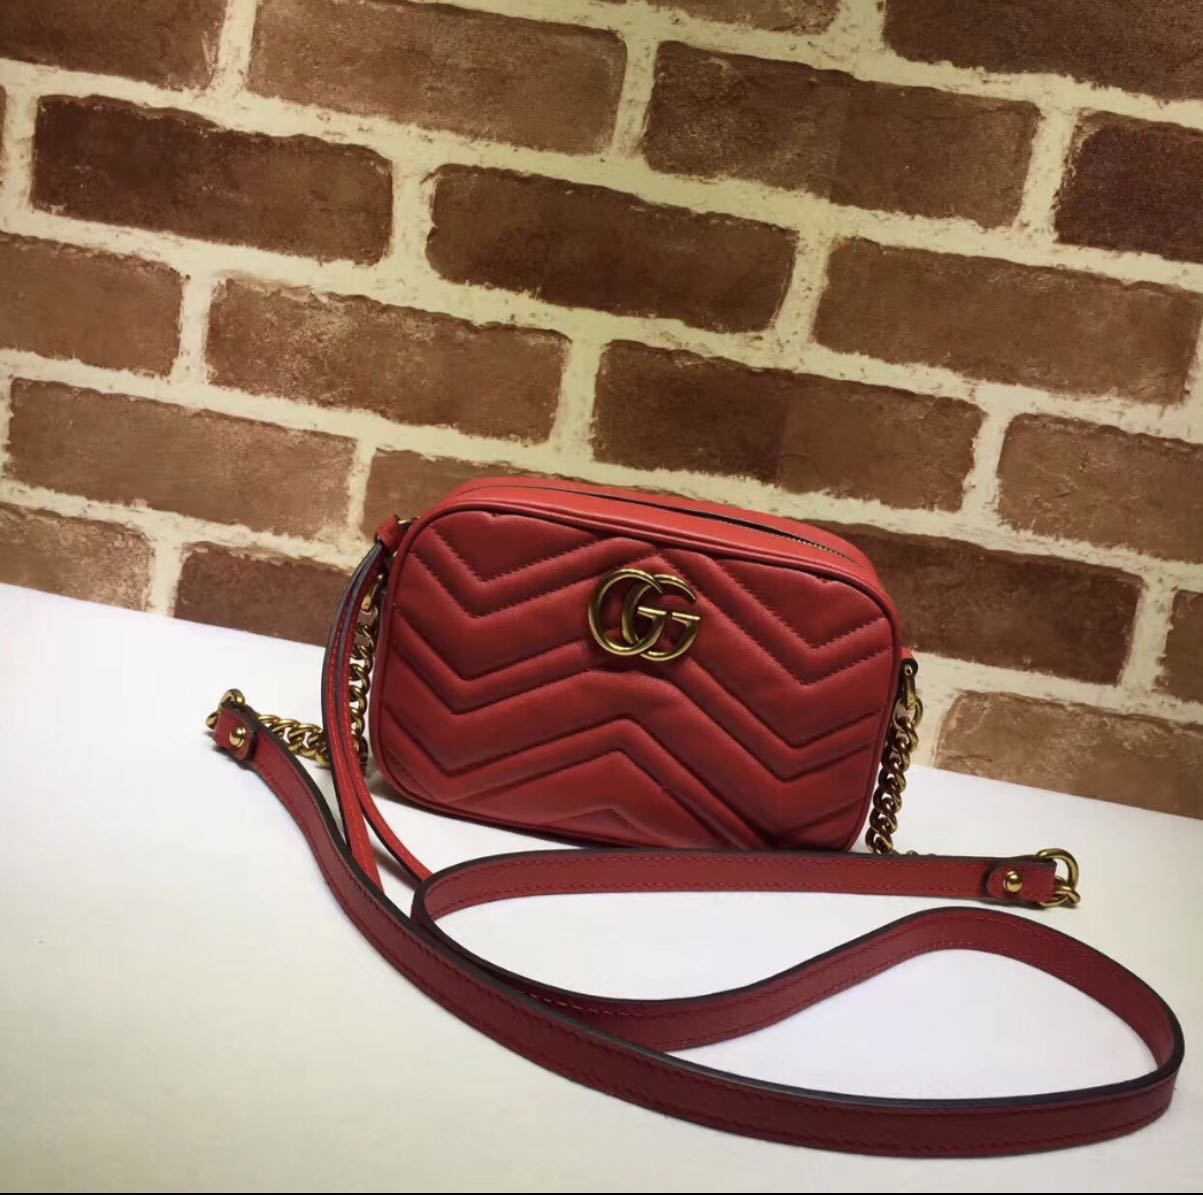 Replica Gucci bag red